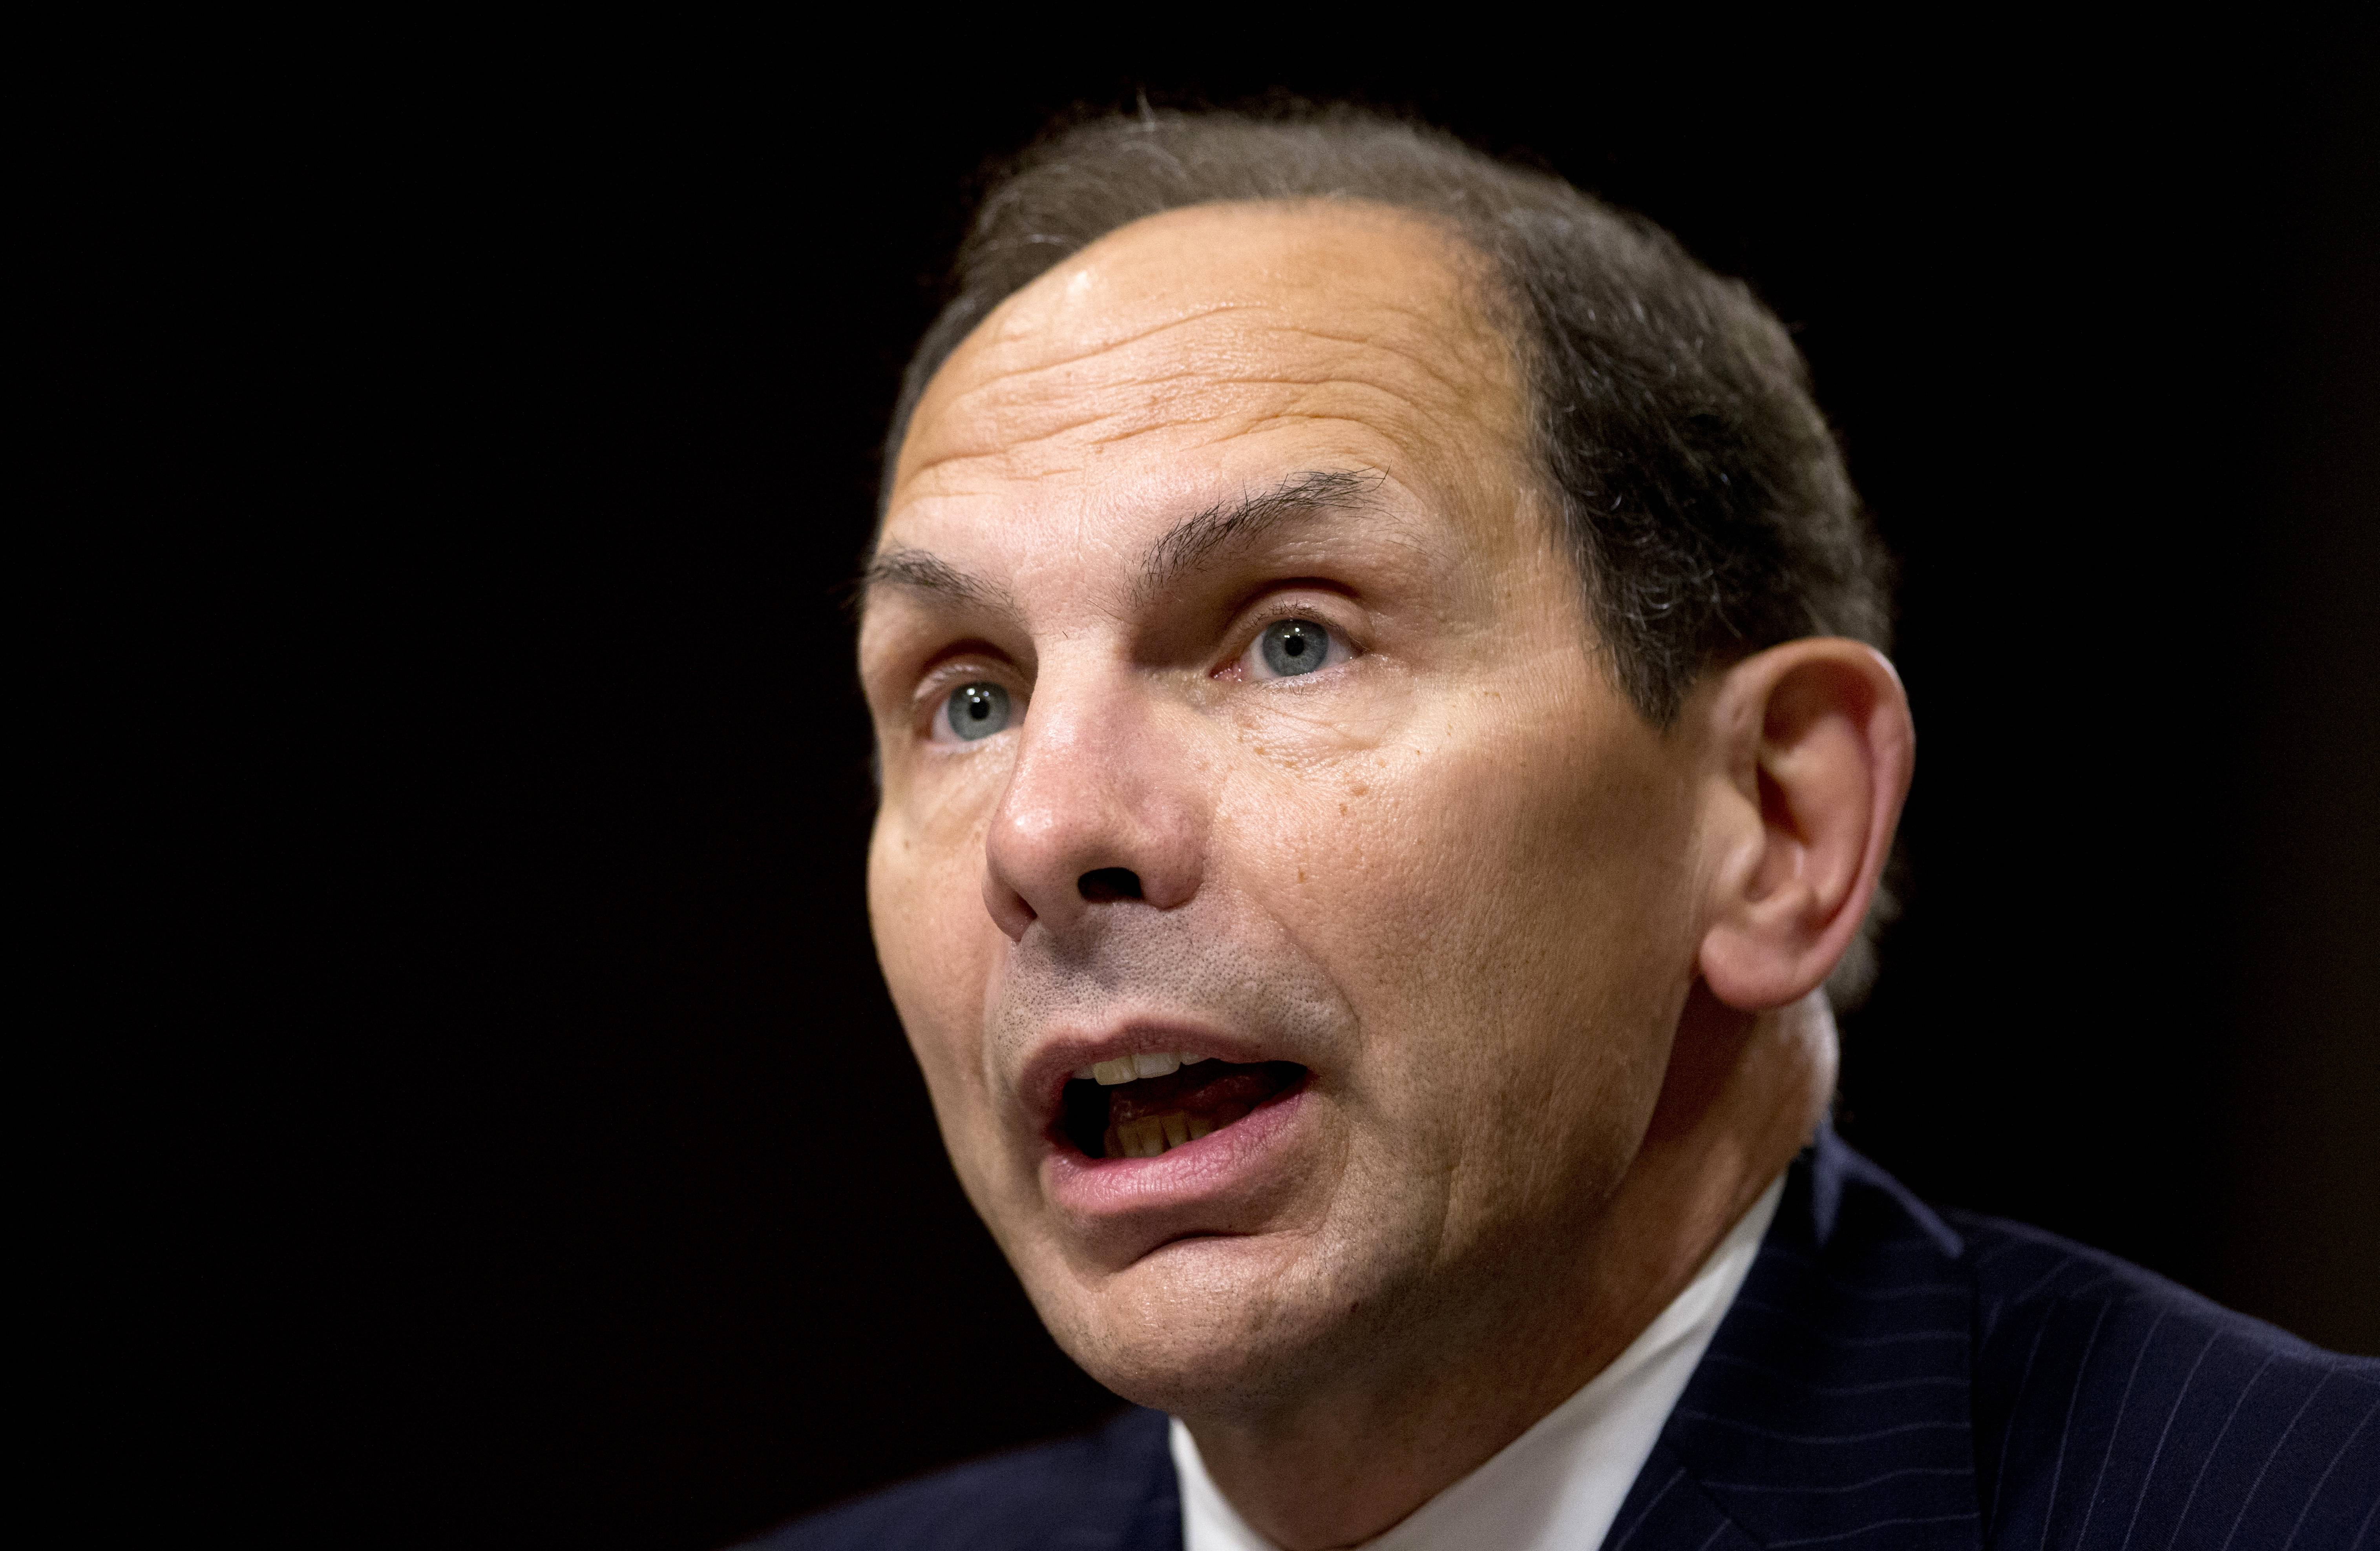 The Senate confirmed former Arlington Heights resident Robert McDonald as the next Veterans Affairs secretary Tuesday.